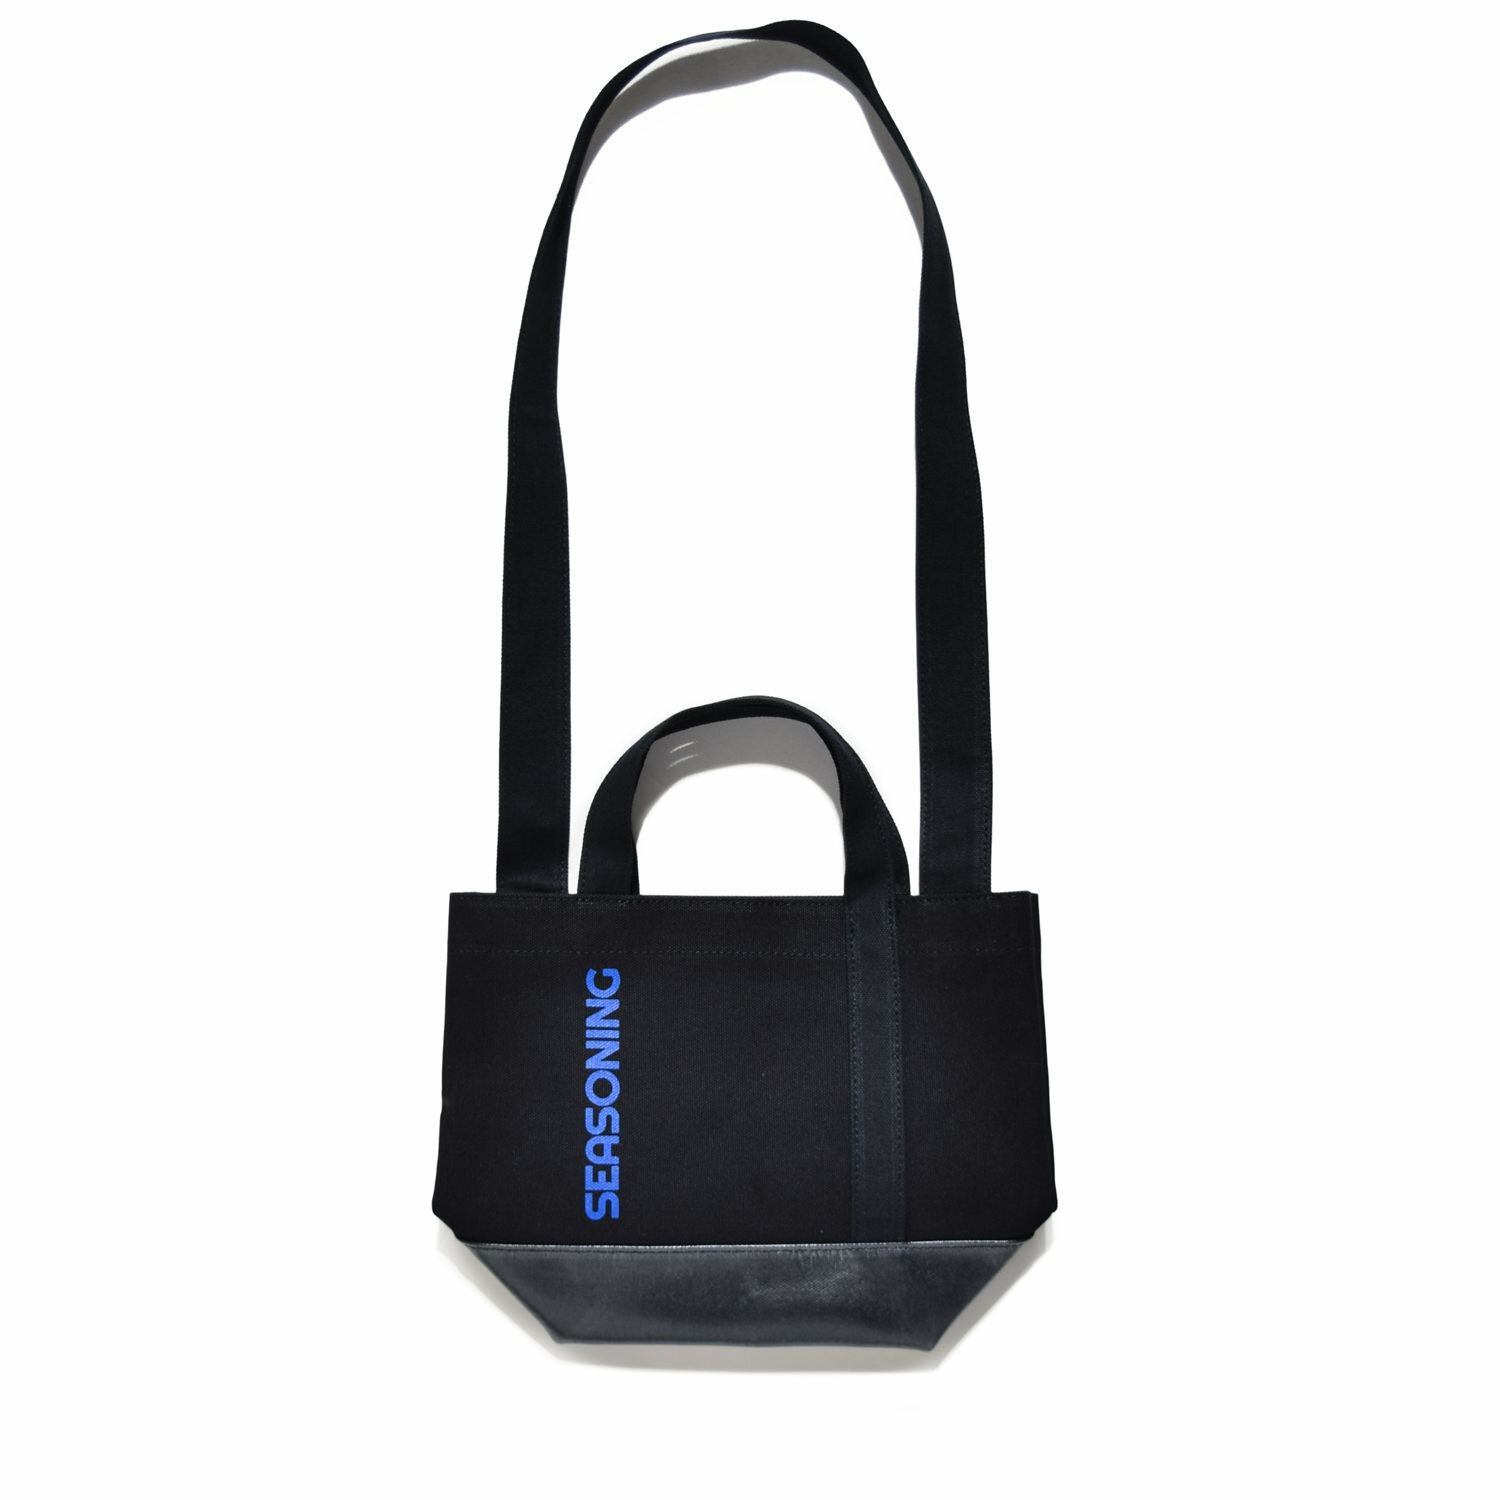 SEASONING TOTE BAG SMALL - BLACK